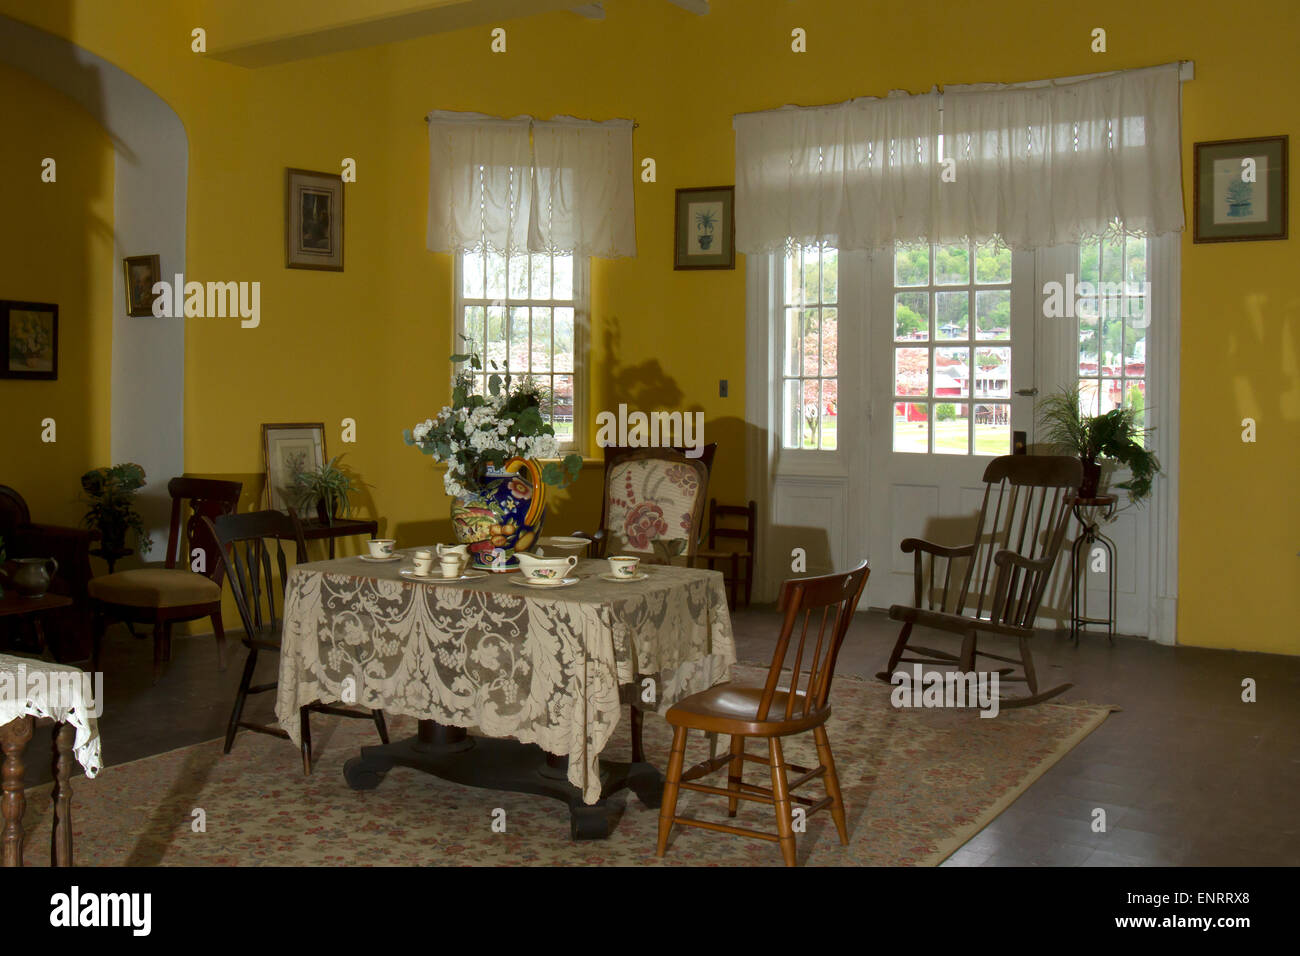 Sunroom Painted In Yellow And Decorated In Antiques Stock Photo